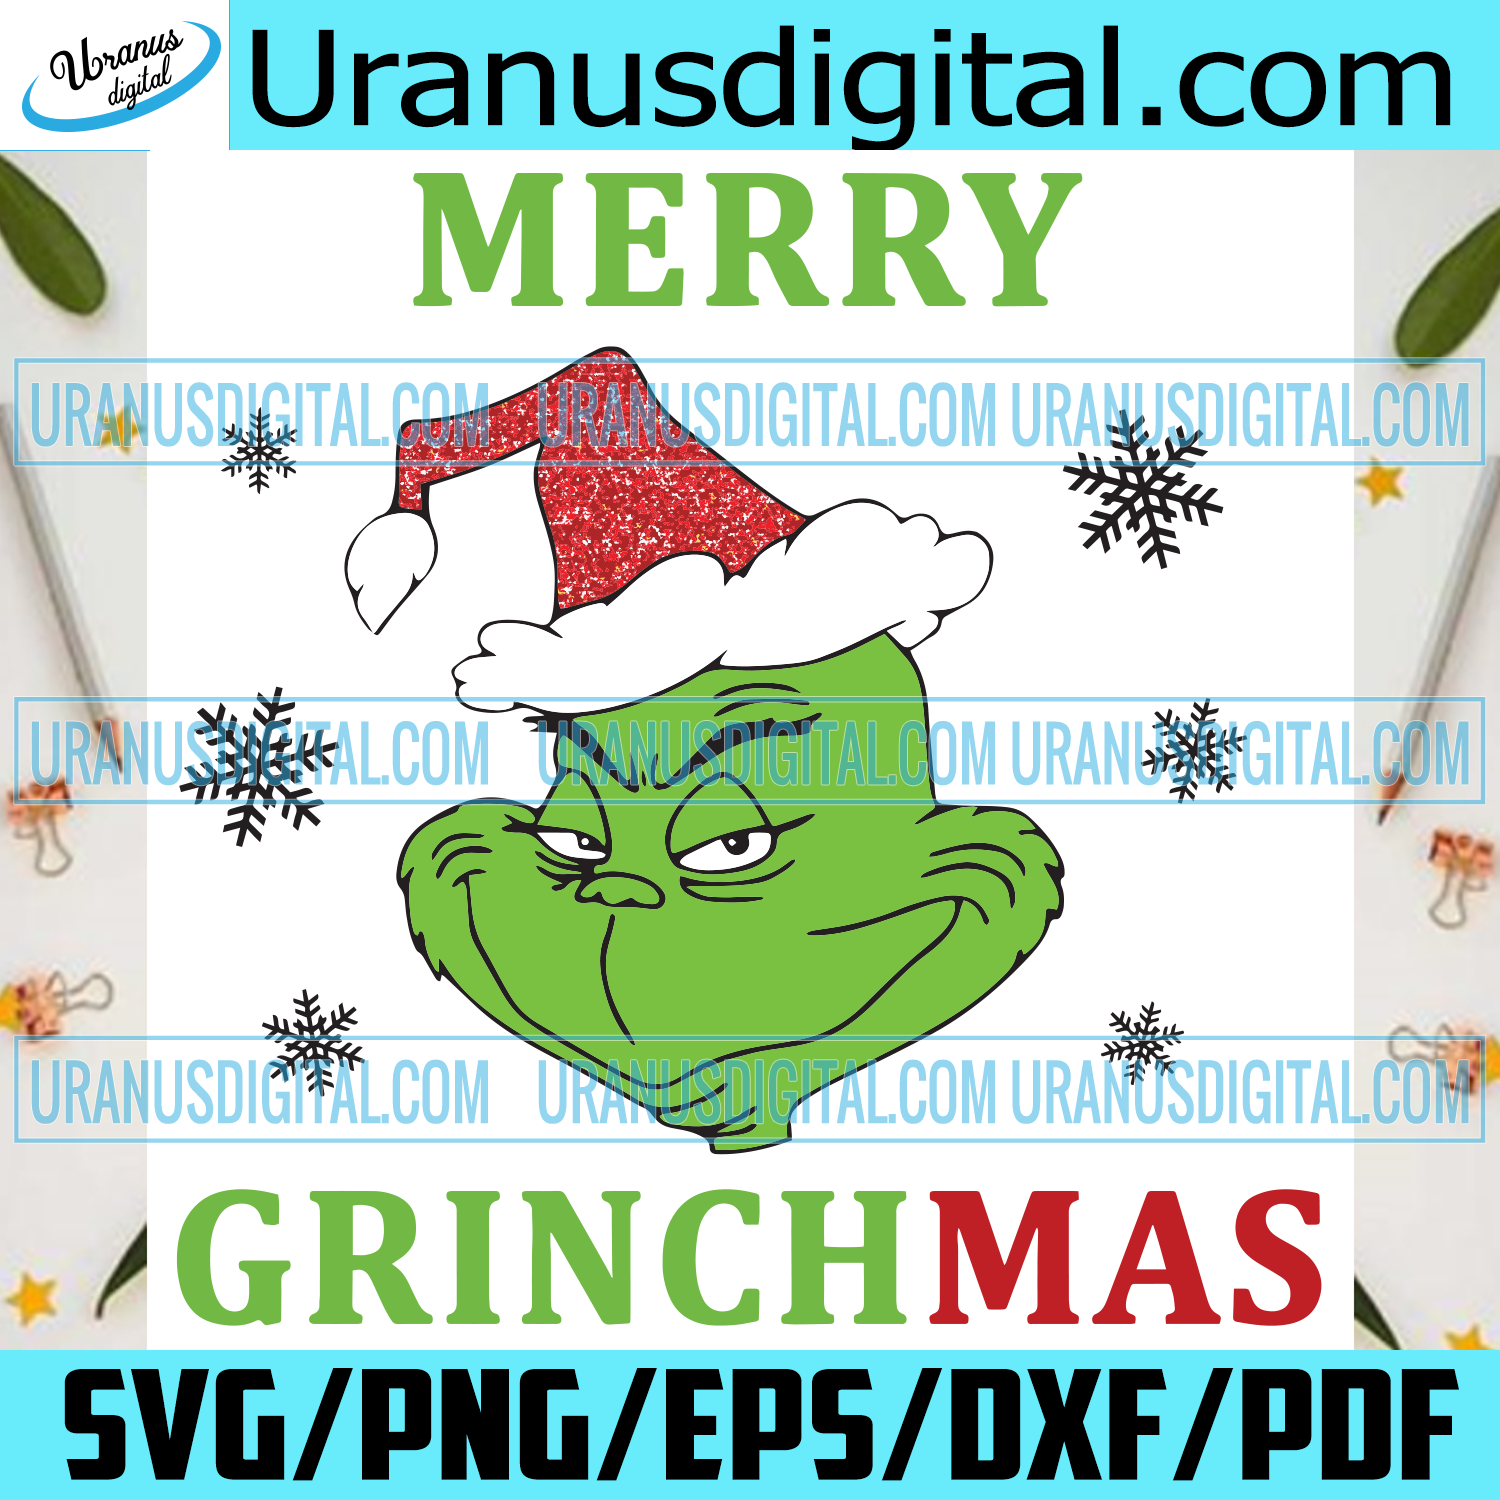 Merry Grinchmas, Christmas Svg, Grinch Svg, Claus Svg, Merry Christmas, Grinchmas Svg, Christmas Tree, Christmas Shirt, Christmas Gift, Grinch Shirt, Grinch Gift, Grinch Lover, Love Christmas, Christmas Day